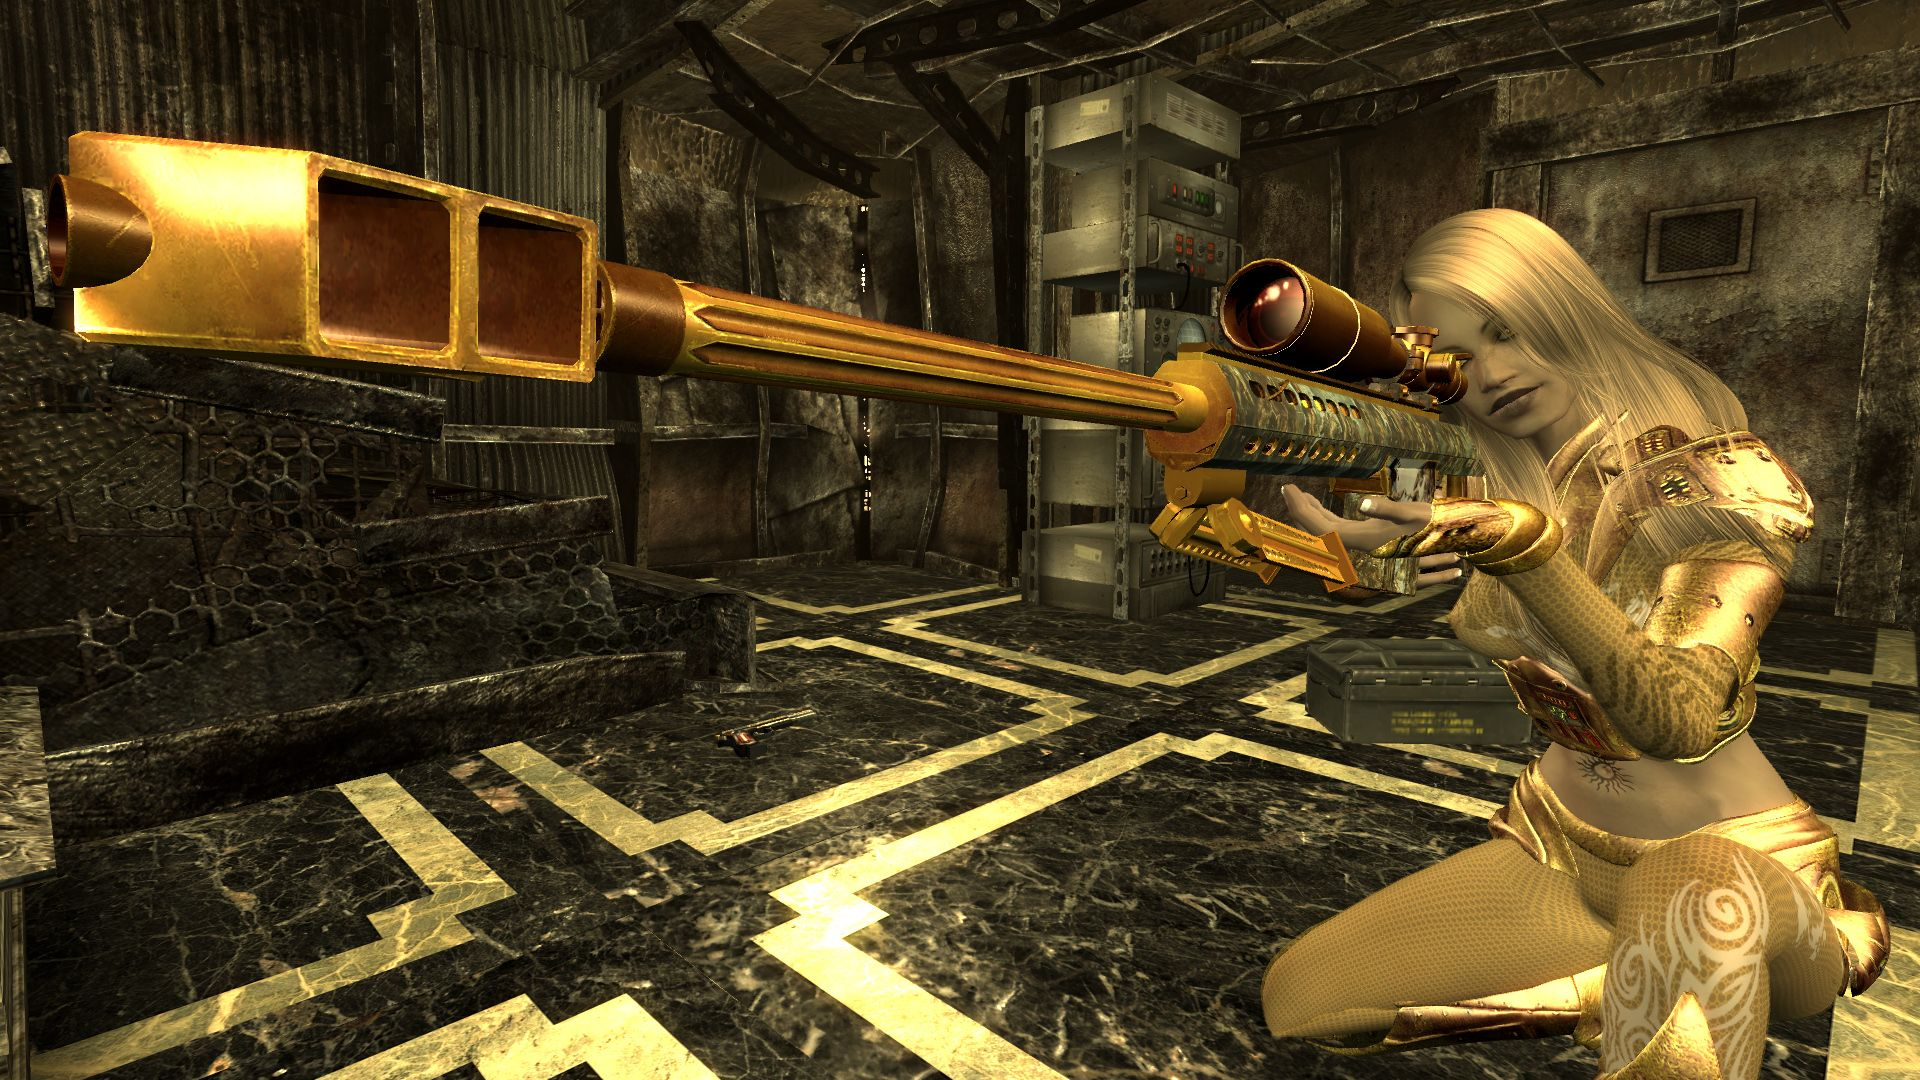 fallout 3 mod The Finger Of God sniper rifle on the Nexus | Game Props | Pinterest | Game props